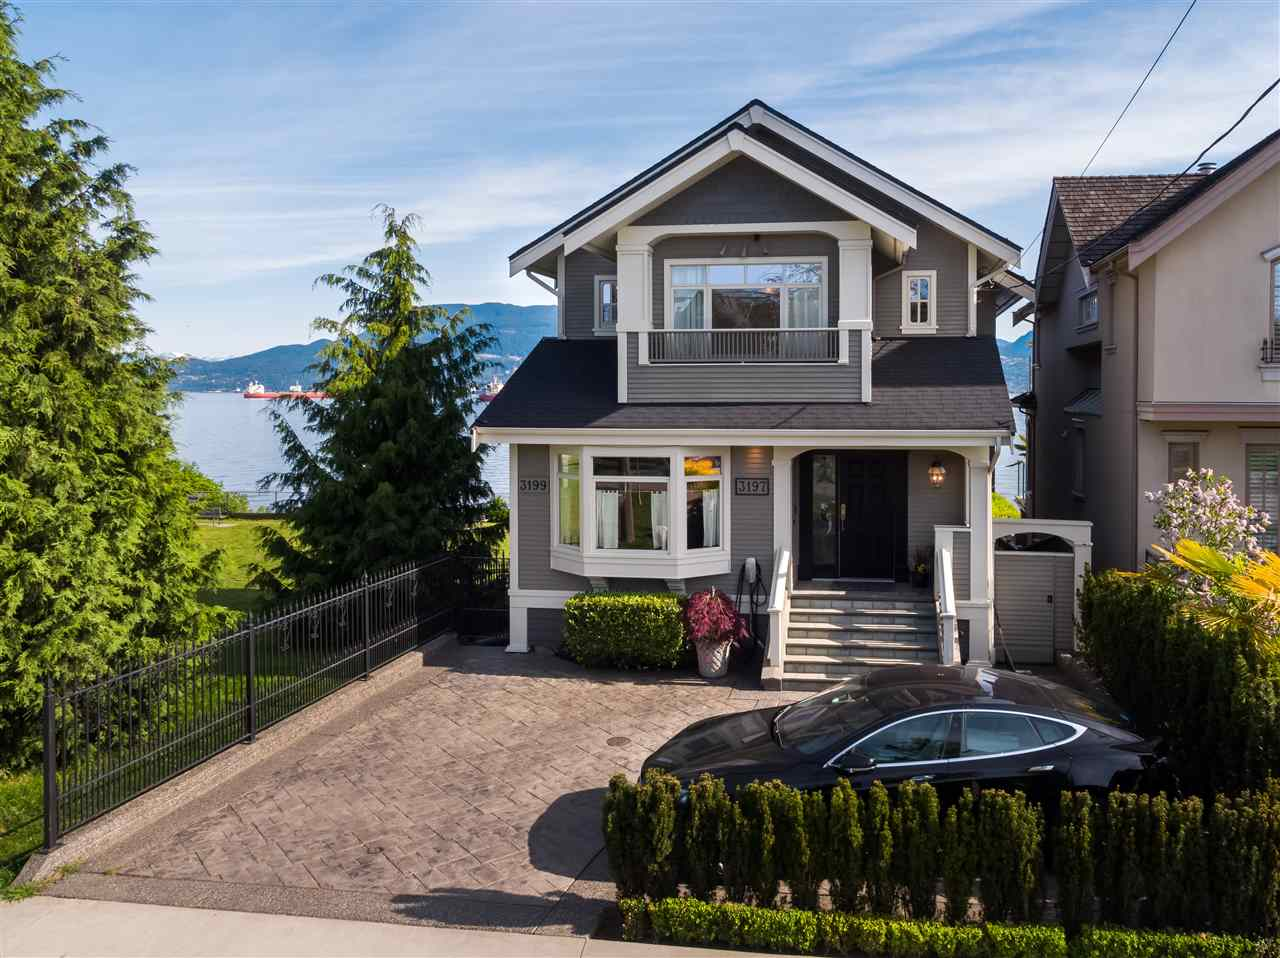 3197 POINT GREY ROAD - MLS® # R2463440